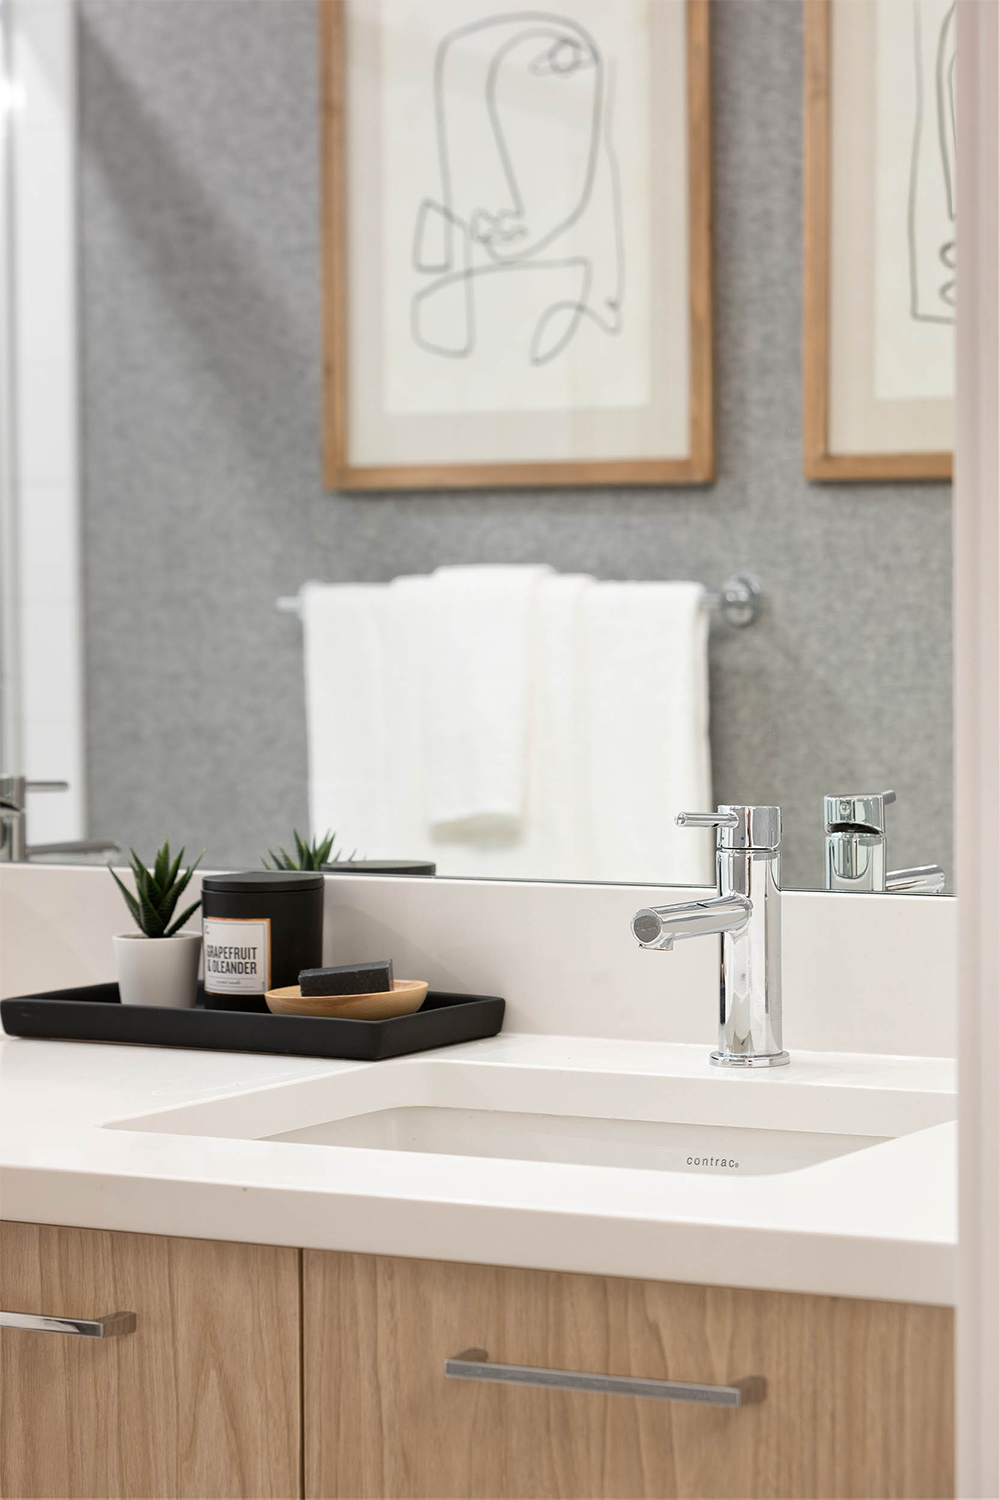 white sink with a silver faucet